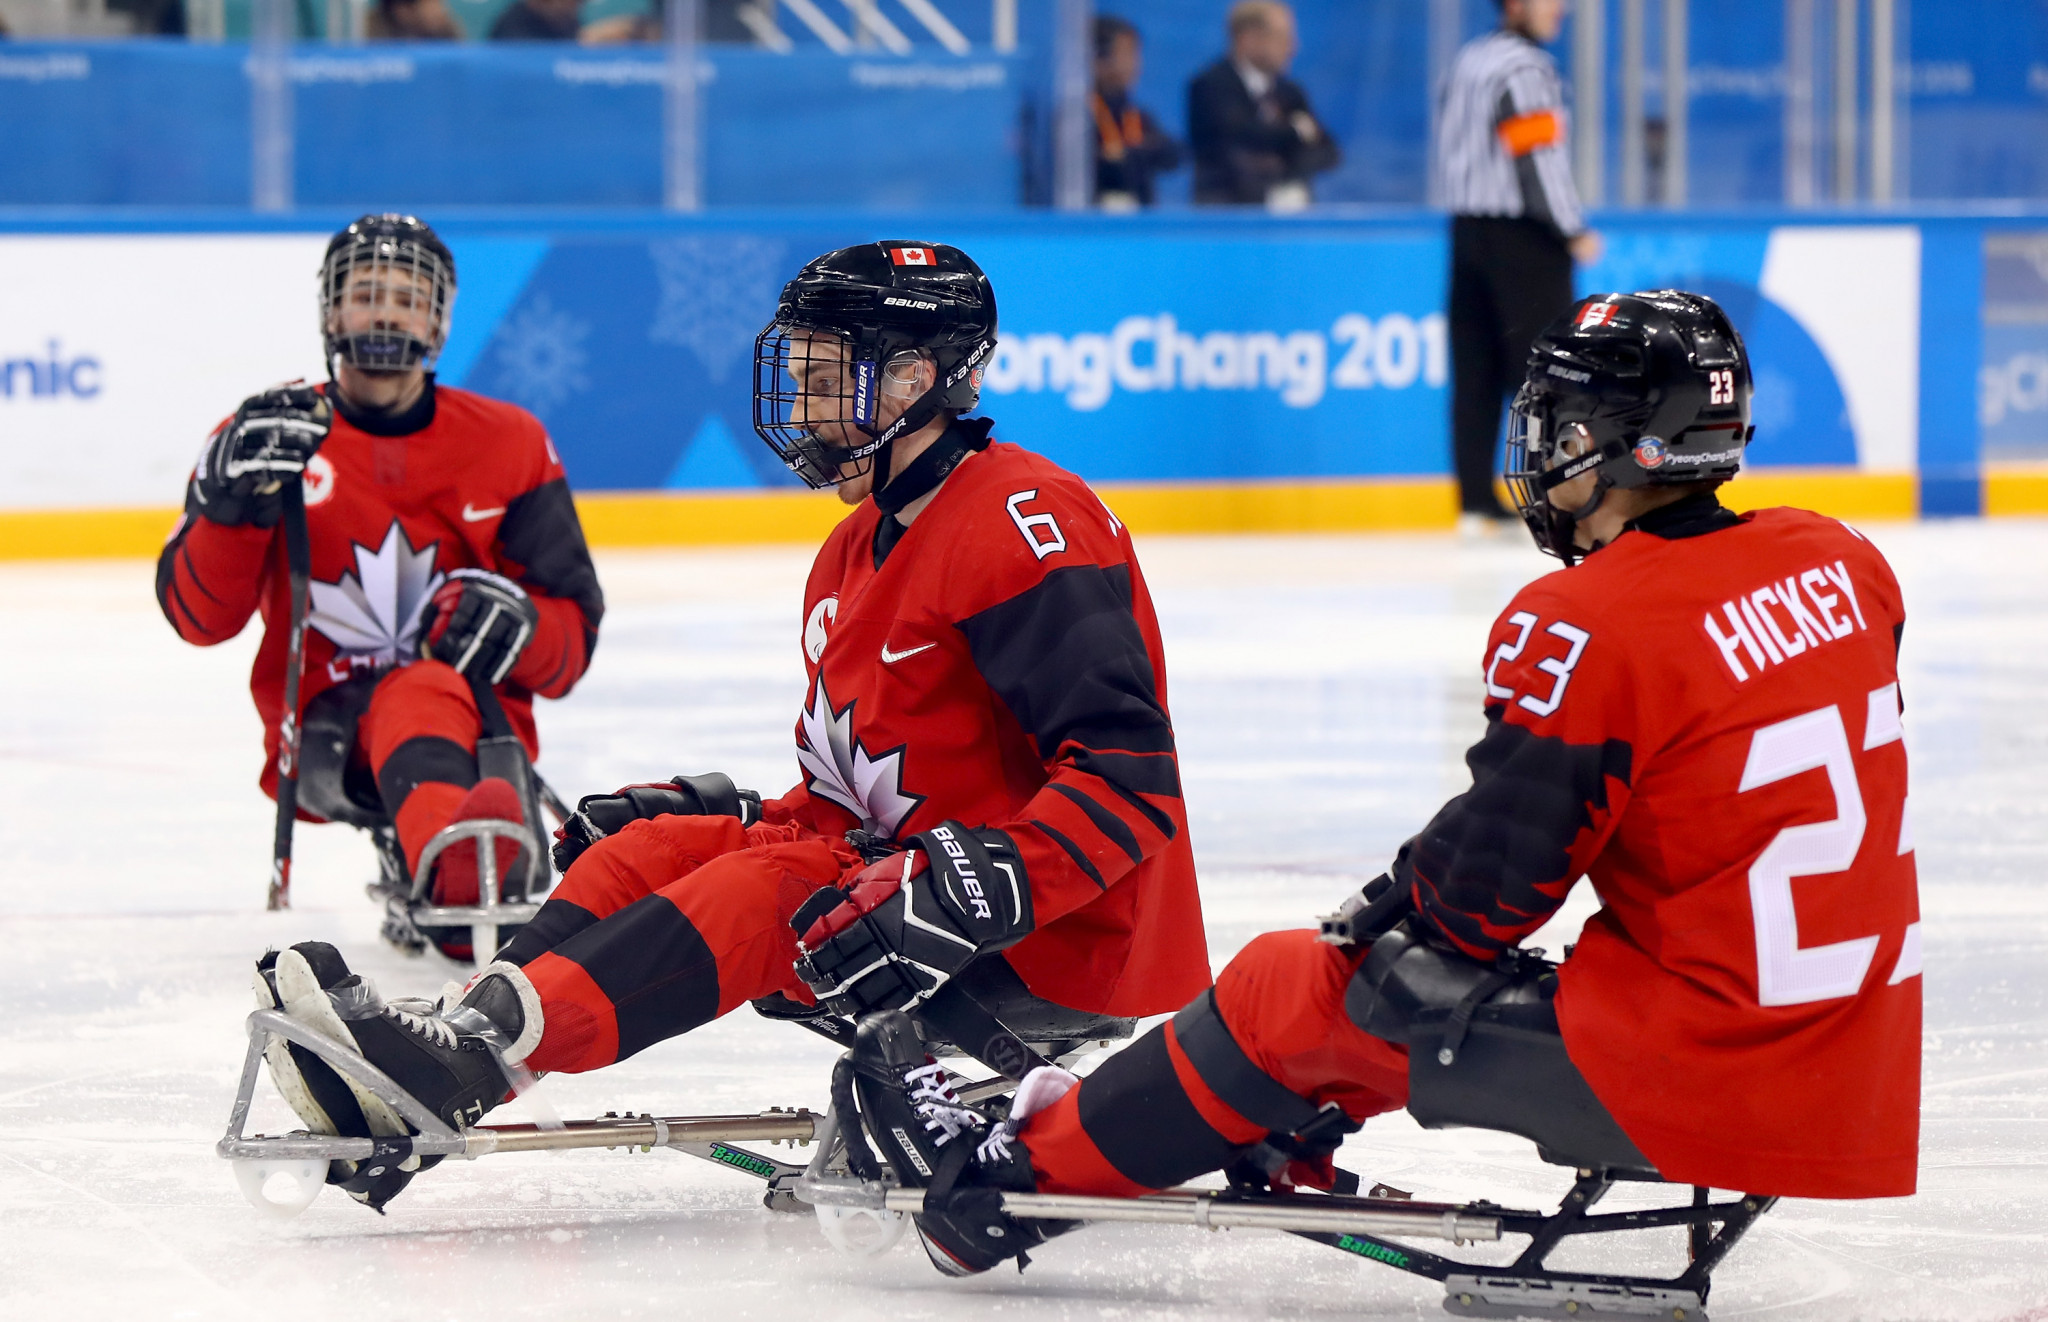 Hockey Canada cancels three upcoming events over COVID-19 challenges